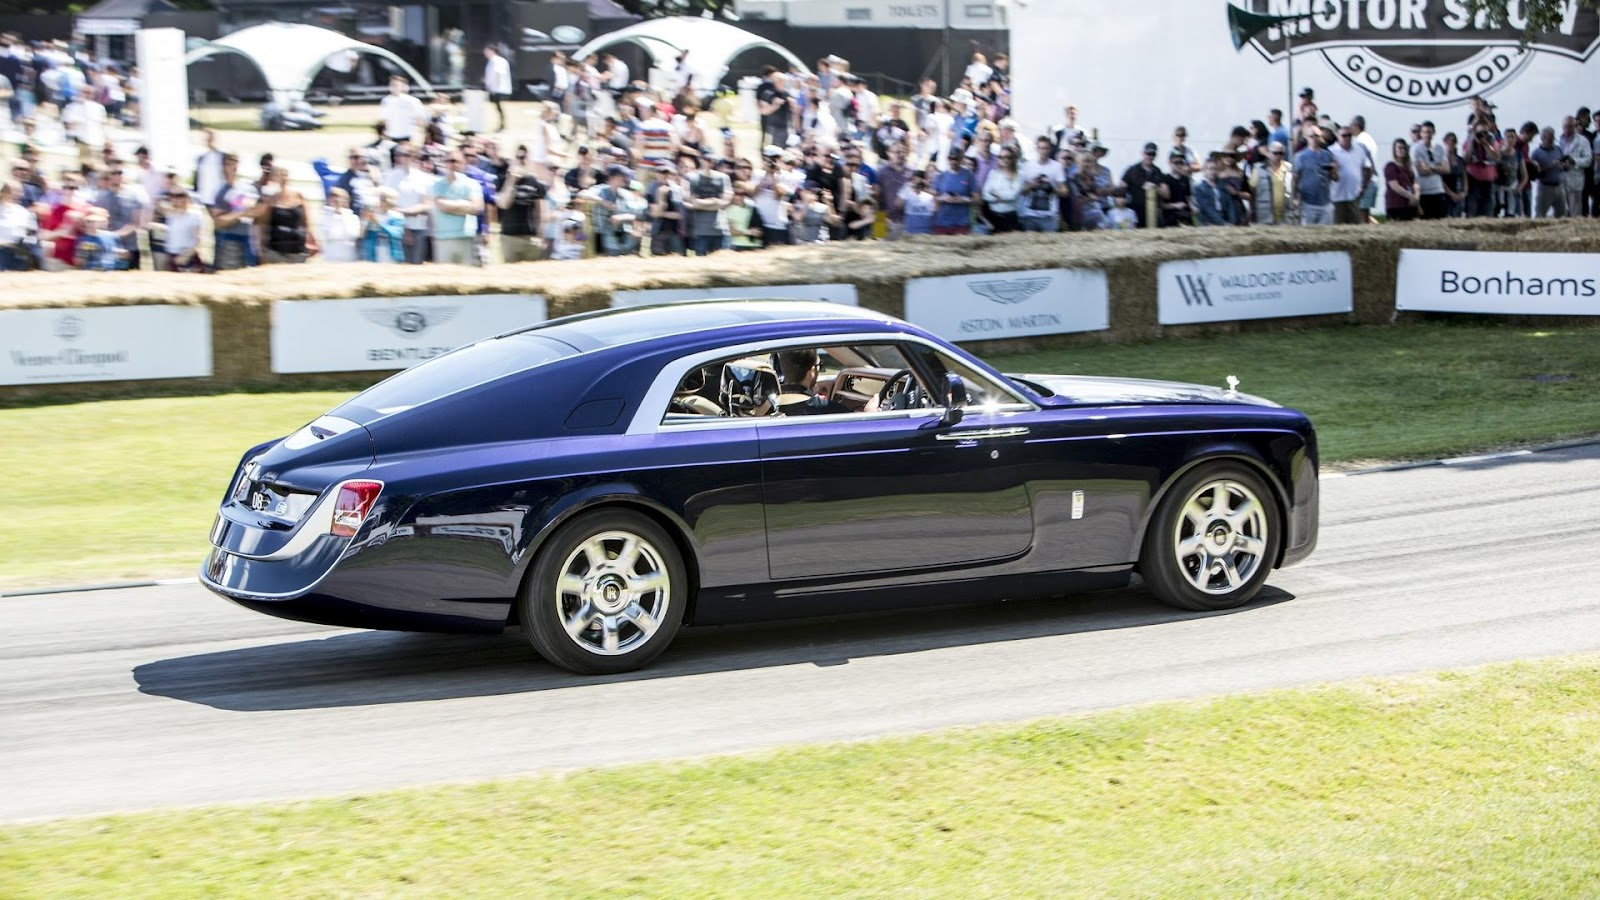 rolls-royce-sweptail-at-2017-goodwood-festival-of-speed.jpg